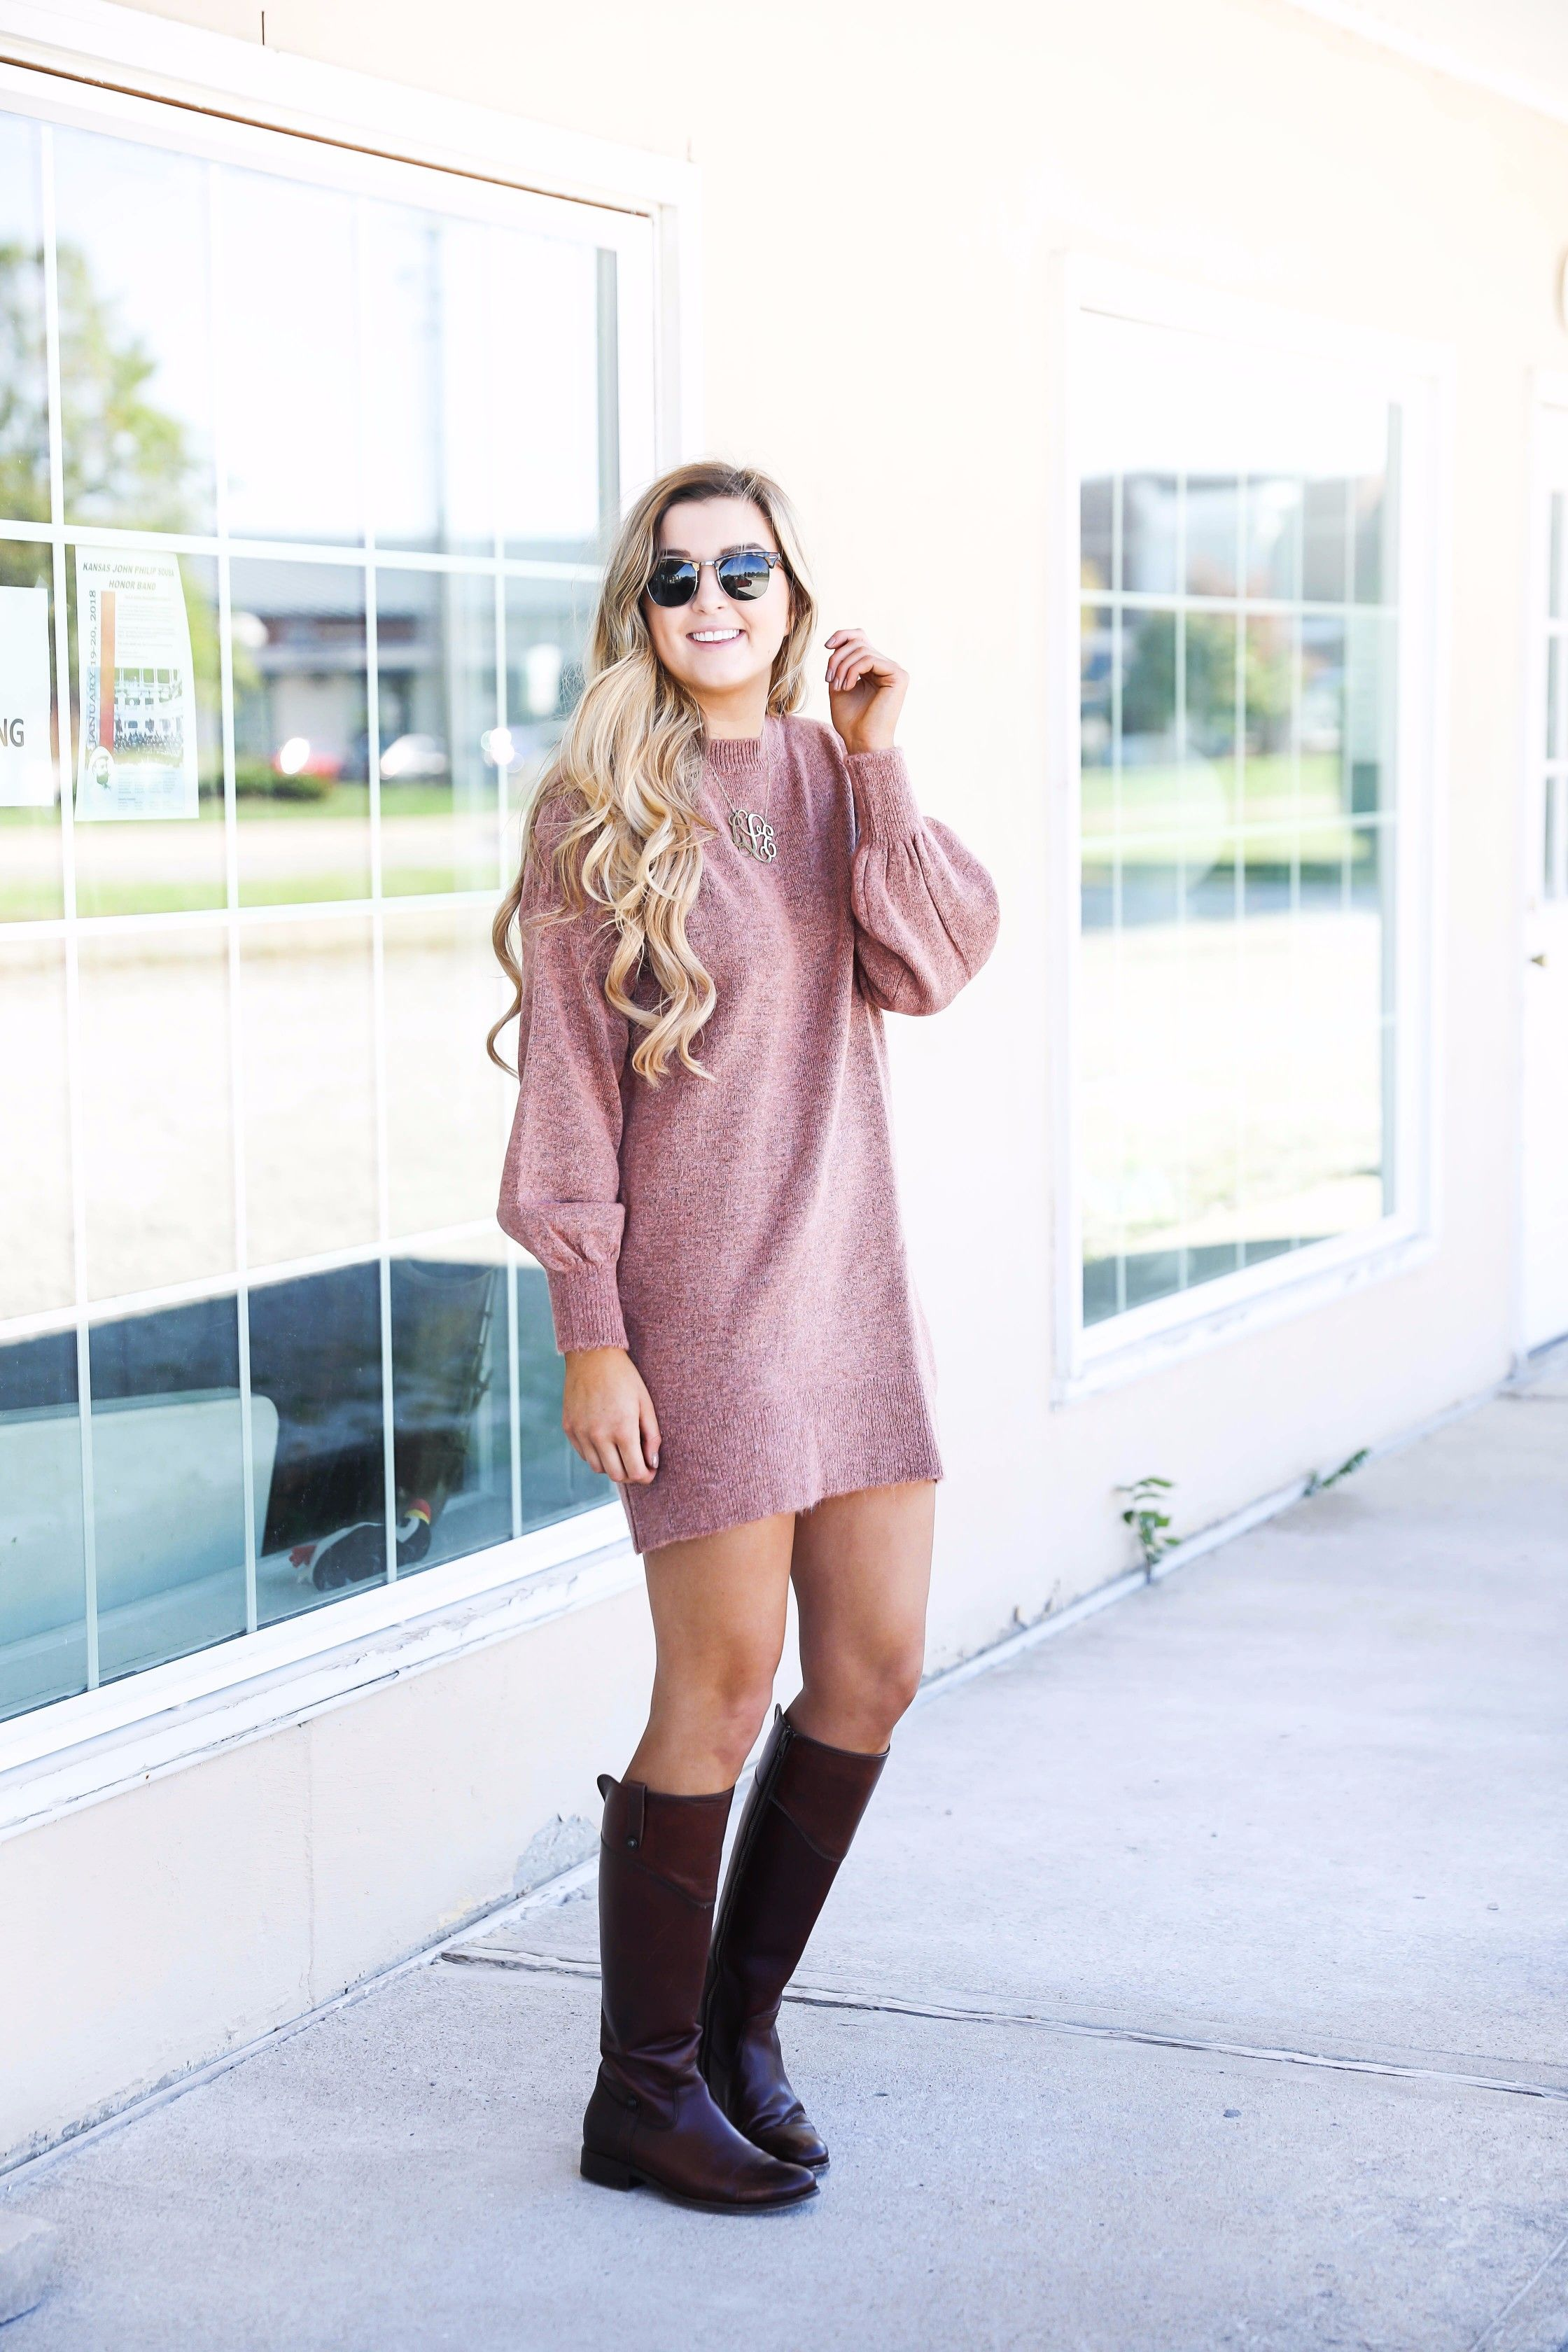 591eb41ee7f4 Sweater dress with puffy sleeves and brown riding boots! Paired with a large  monogram necklace, perfect fall outfit! Details on fashion blog daily dose  of ...